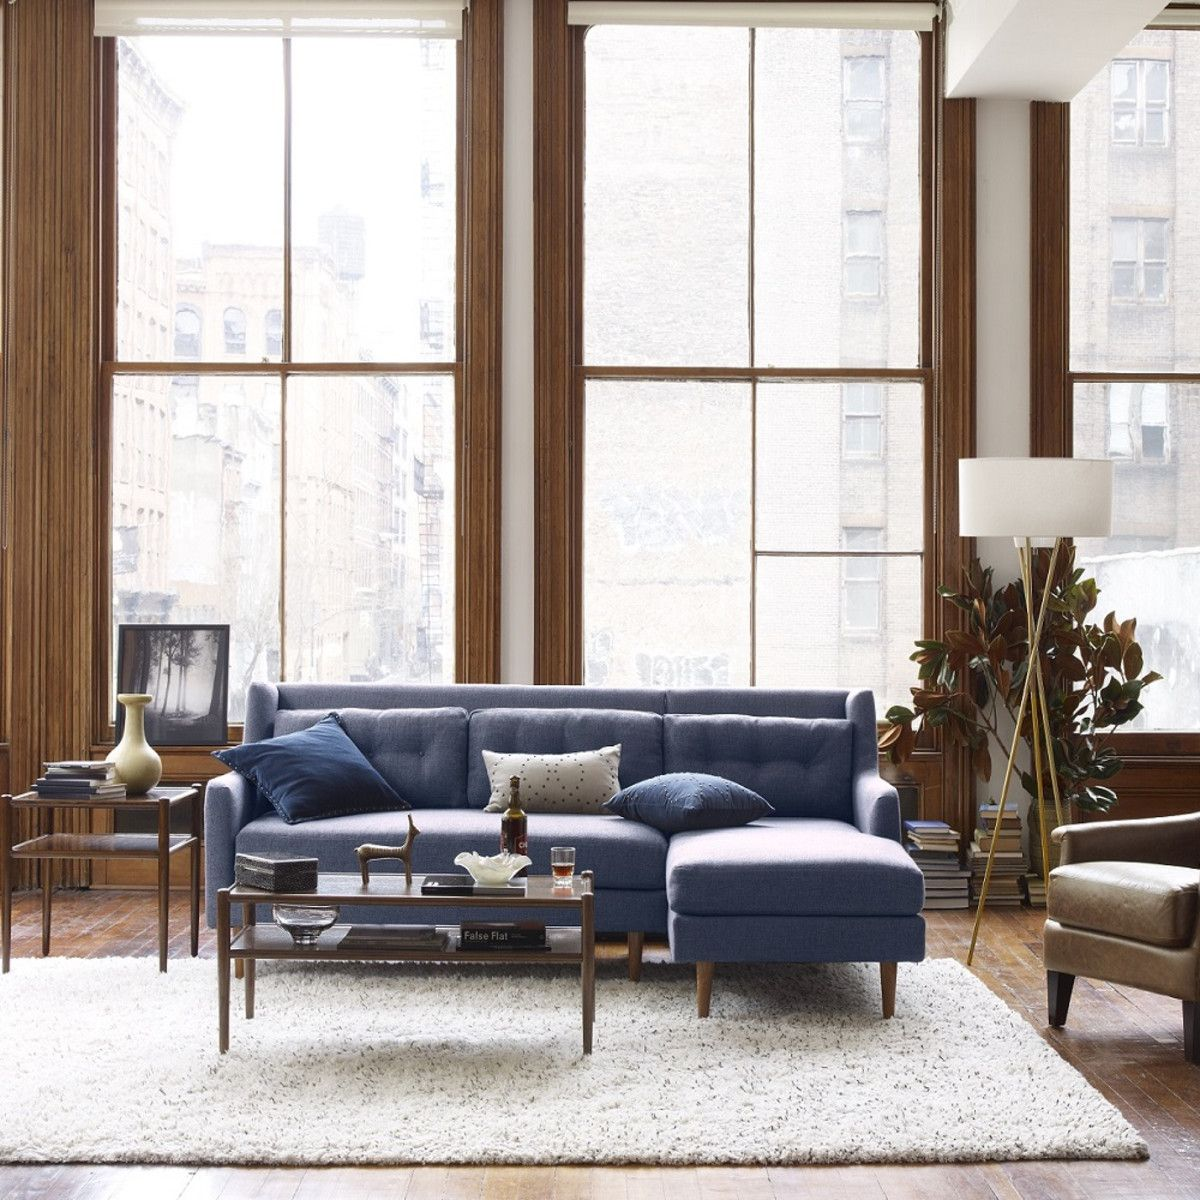 Nice West Elm Couch Reviews New West Elm Couch Reviews 45 For Sofa Room Ideas With West Elm Couch R Tripod Floor Lamps Floor Lamp Bedroom Stylish Living Room